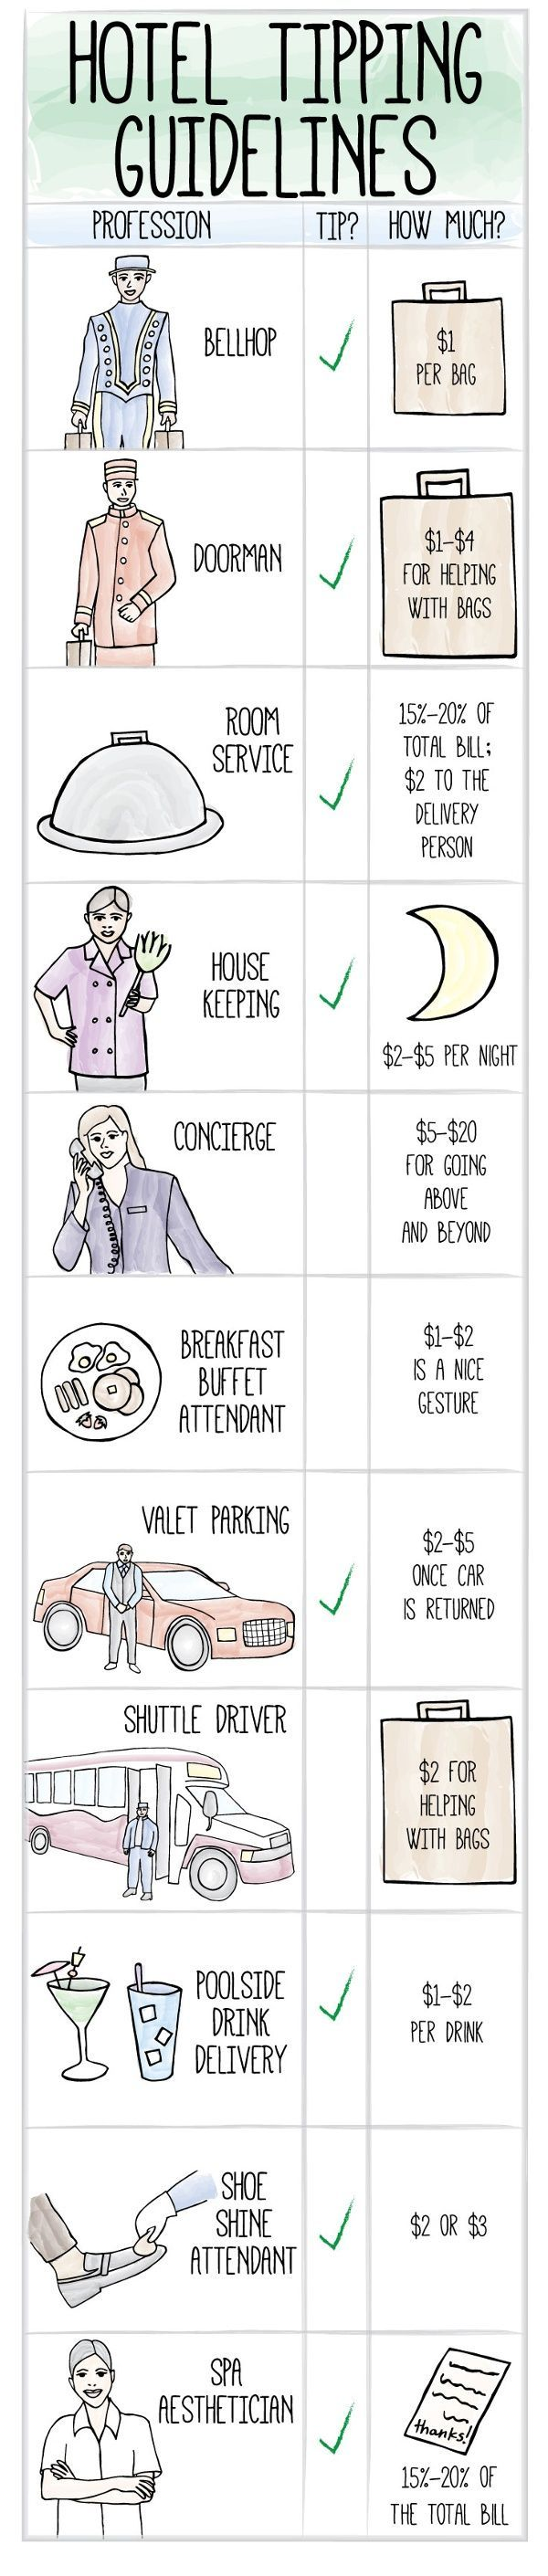 Everything You Need to Know About Tipping at Hotels I'll be honest, I didn't know about a lot of this. Glad I do now!